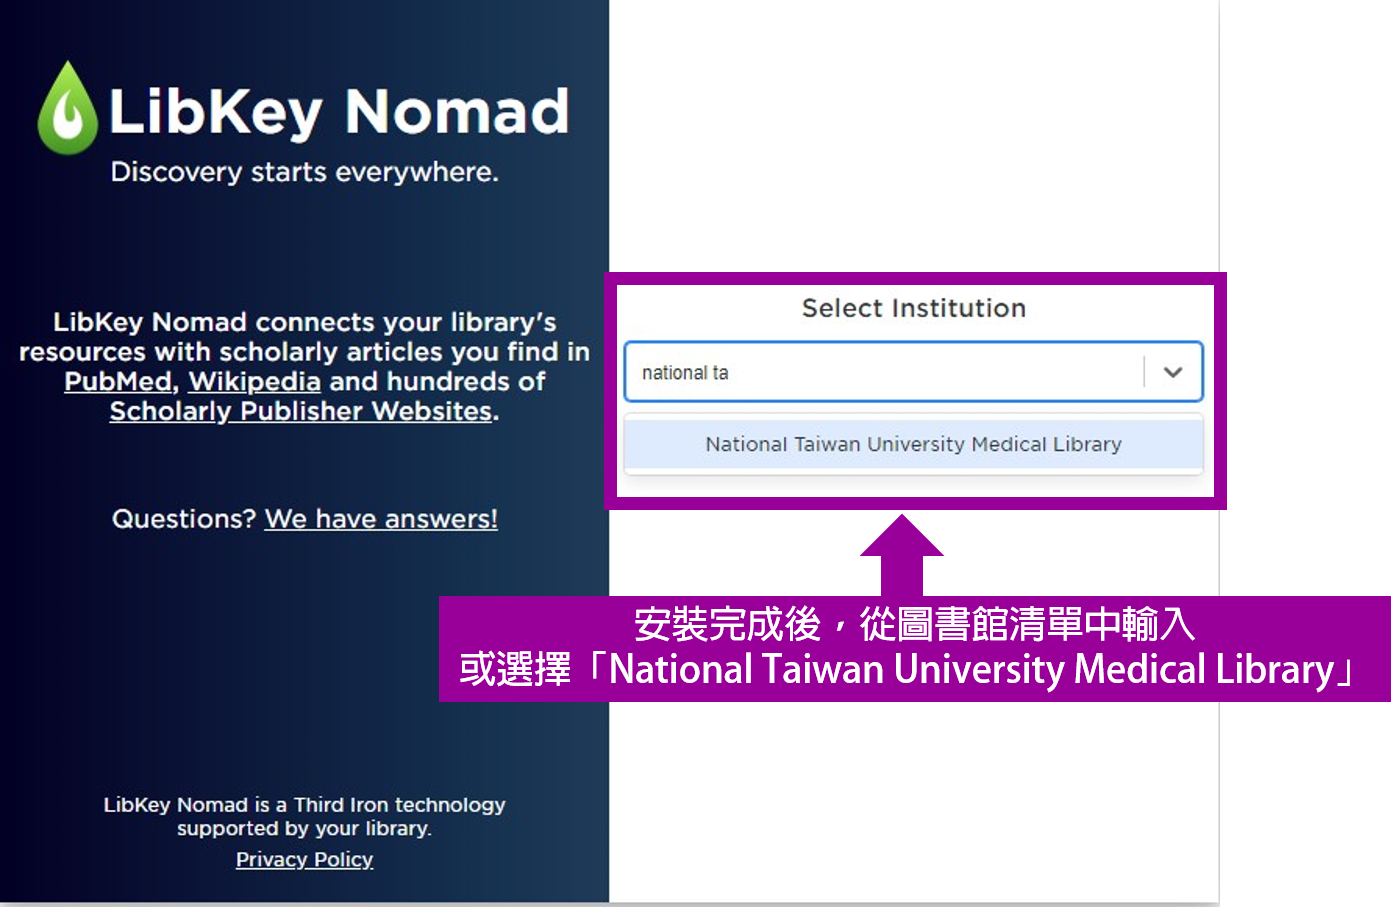 輸入或選擇National Taiwan University Medical Library